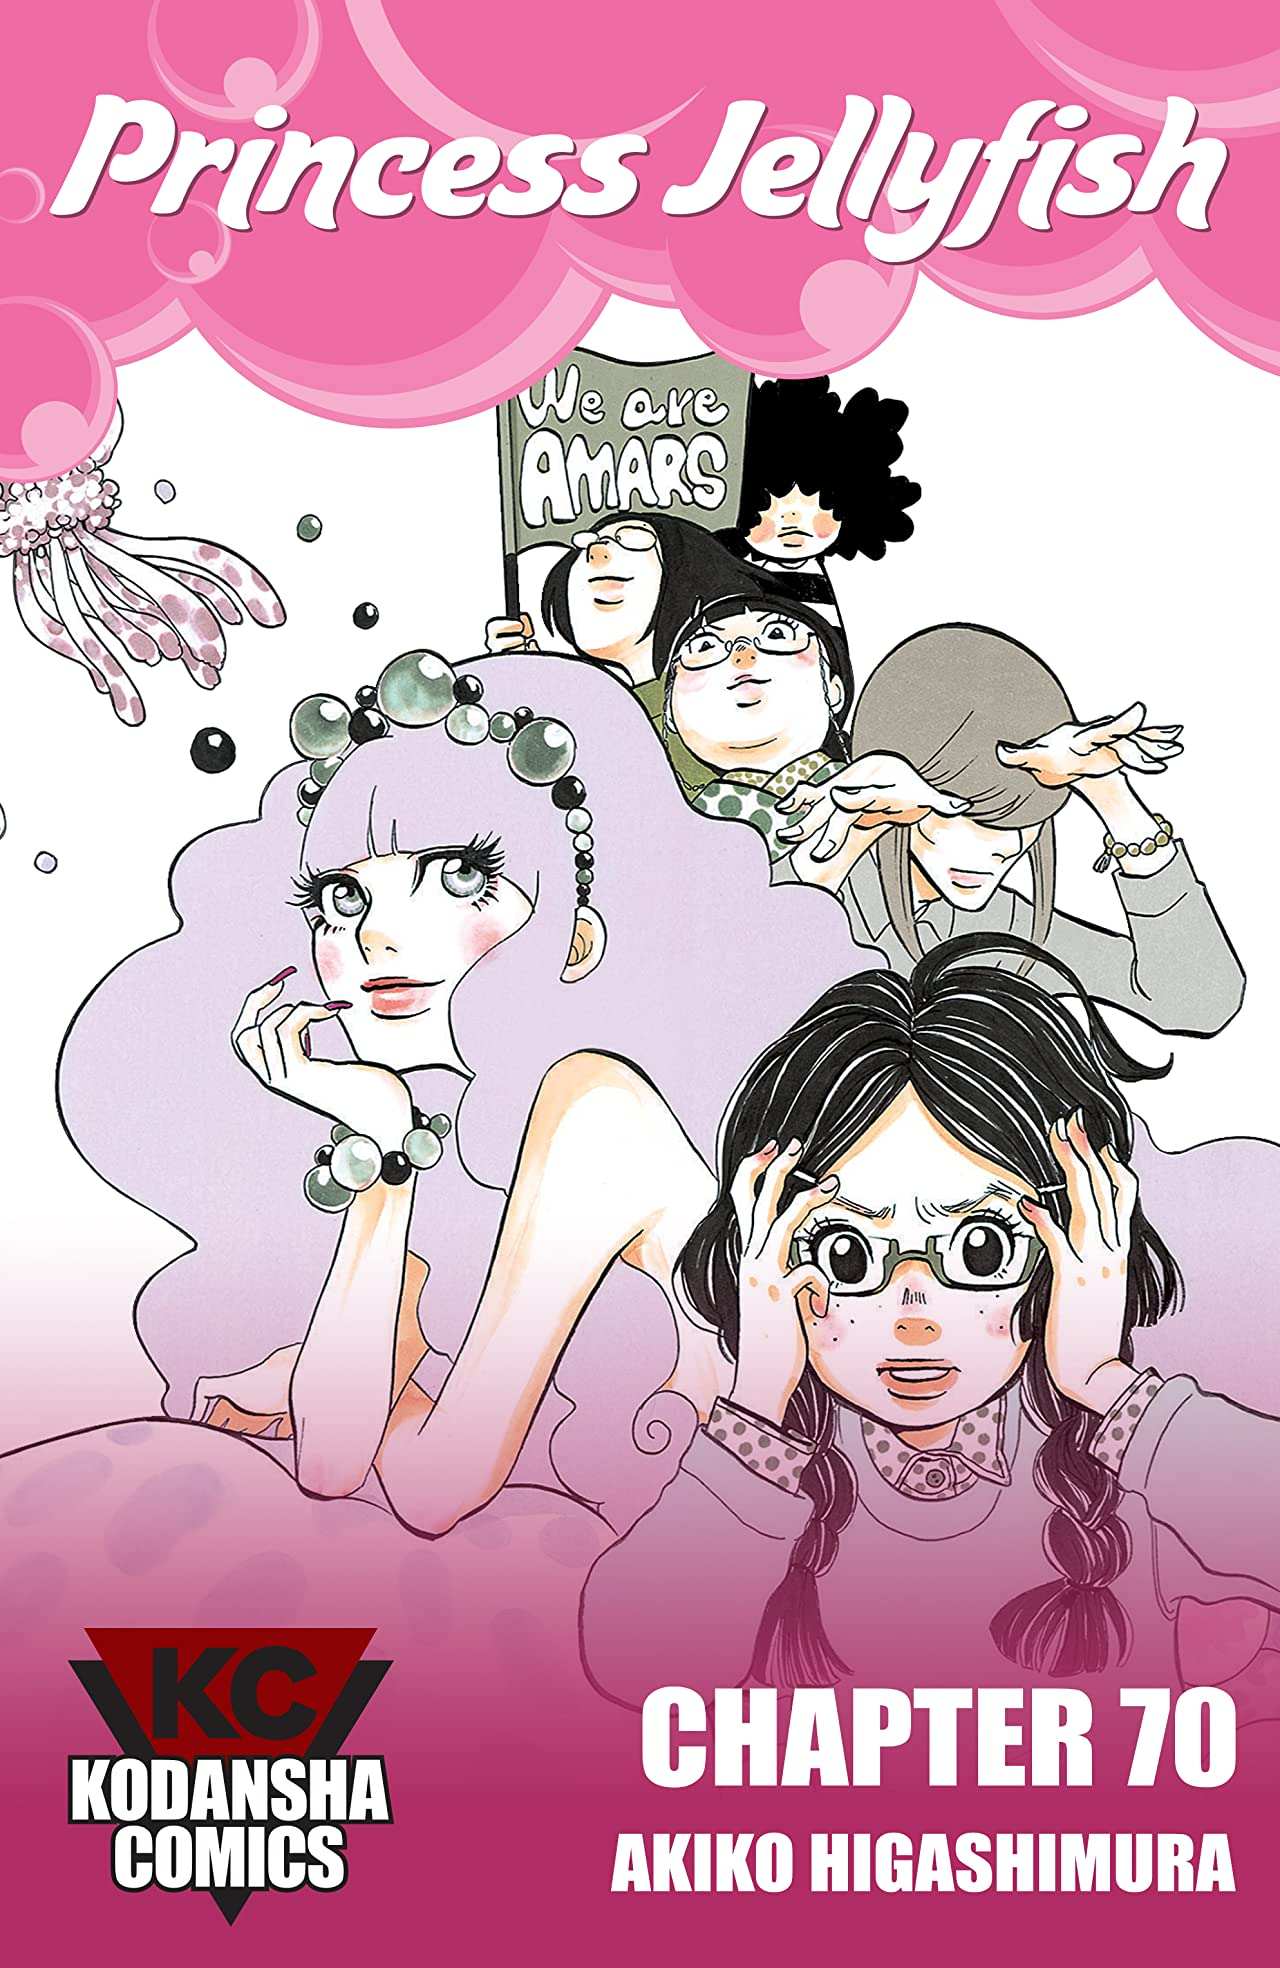 Princess Jellyfish #70